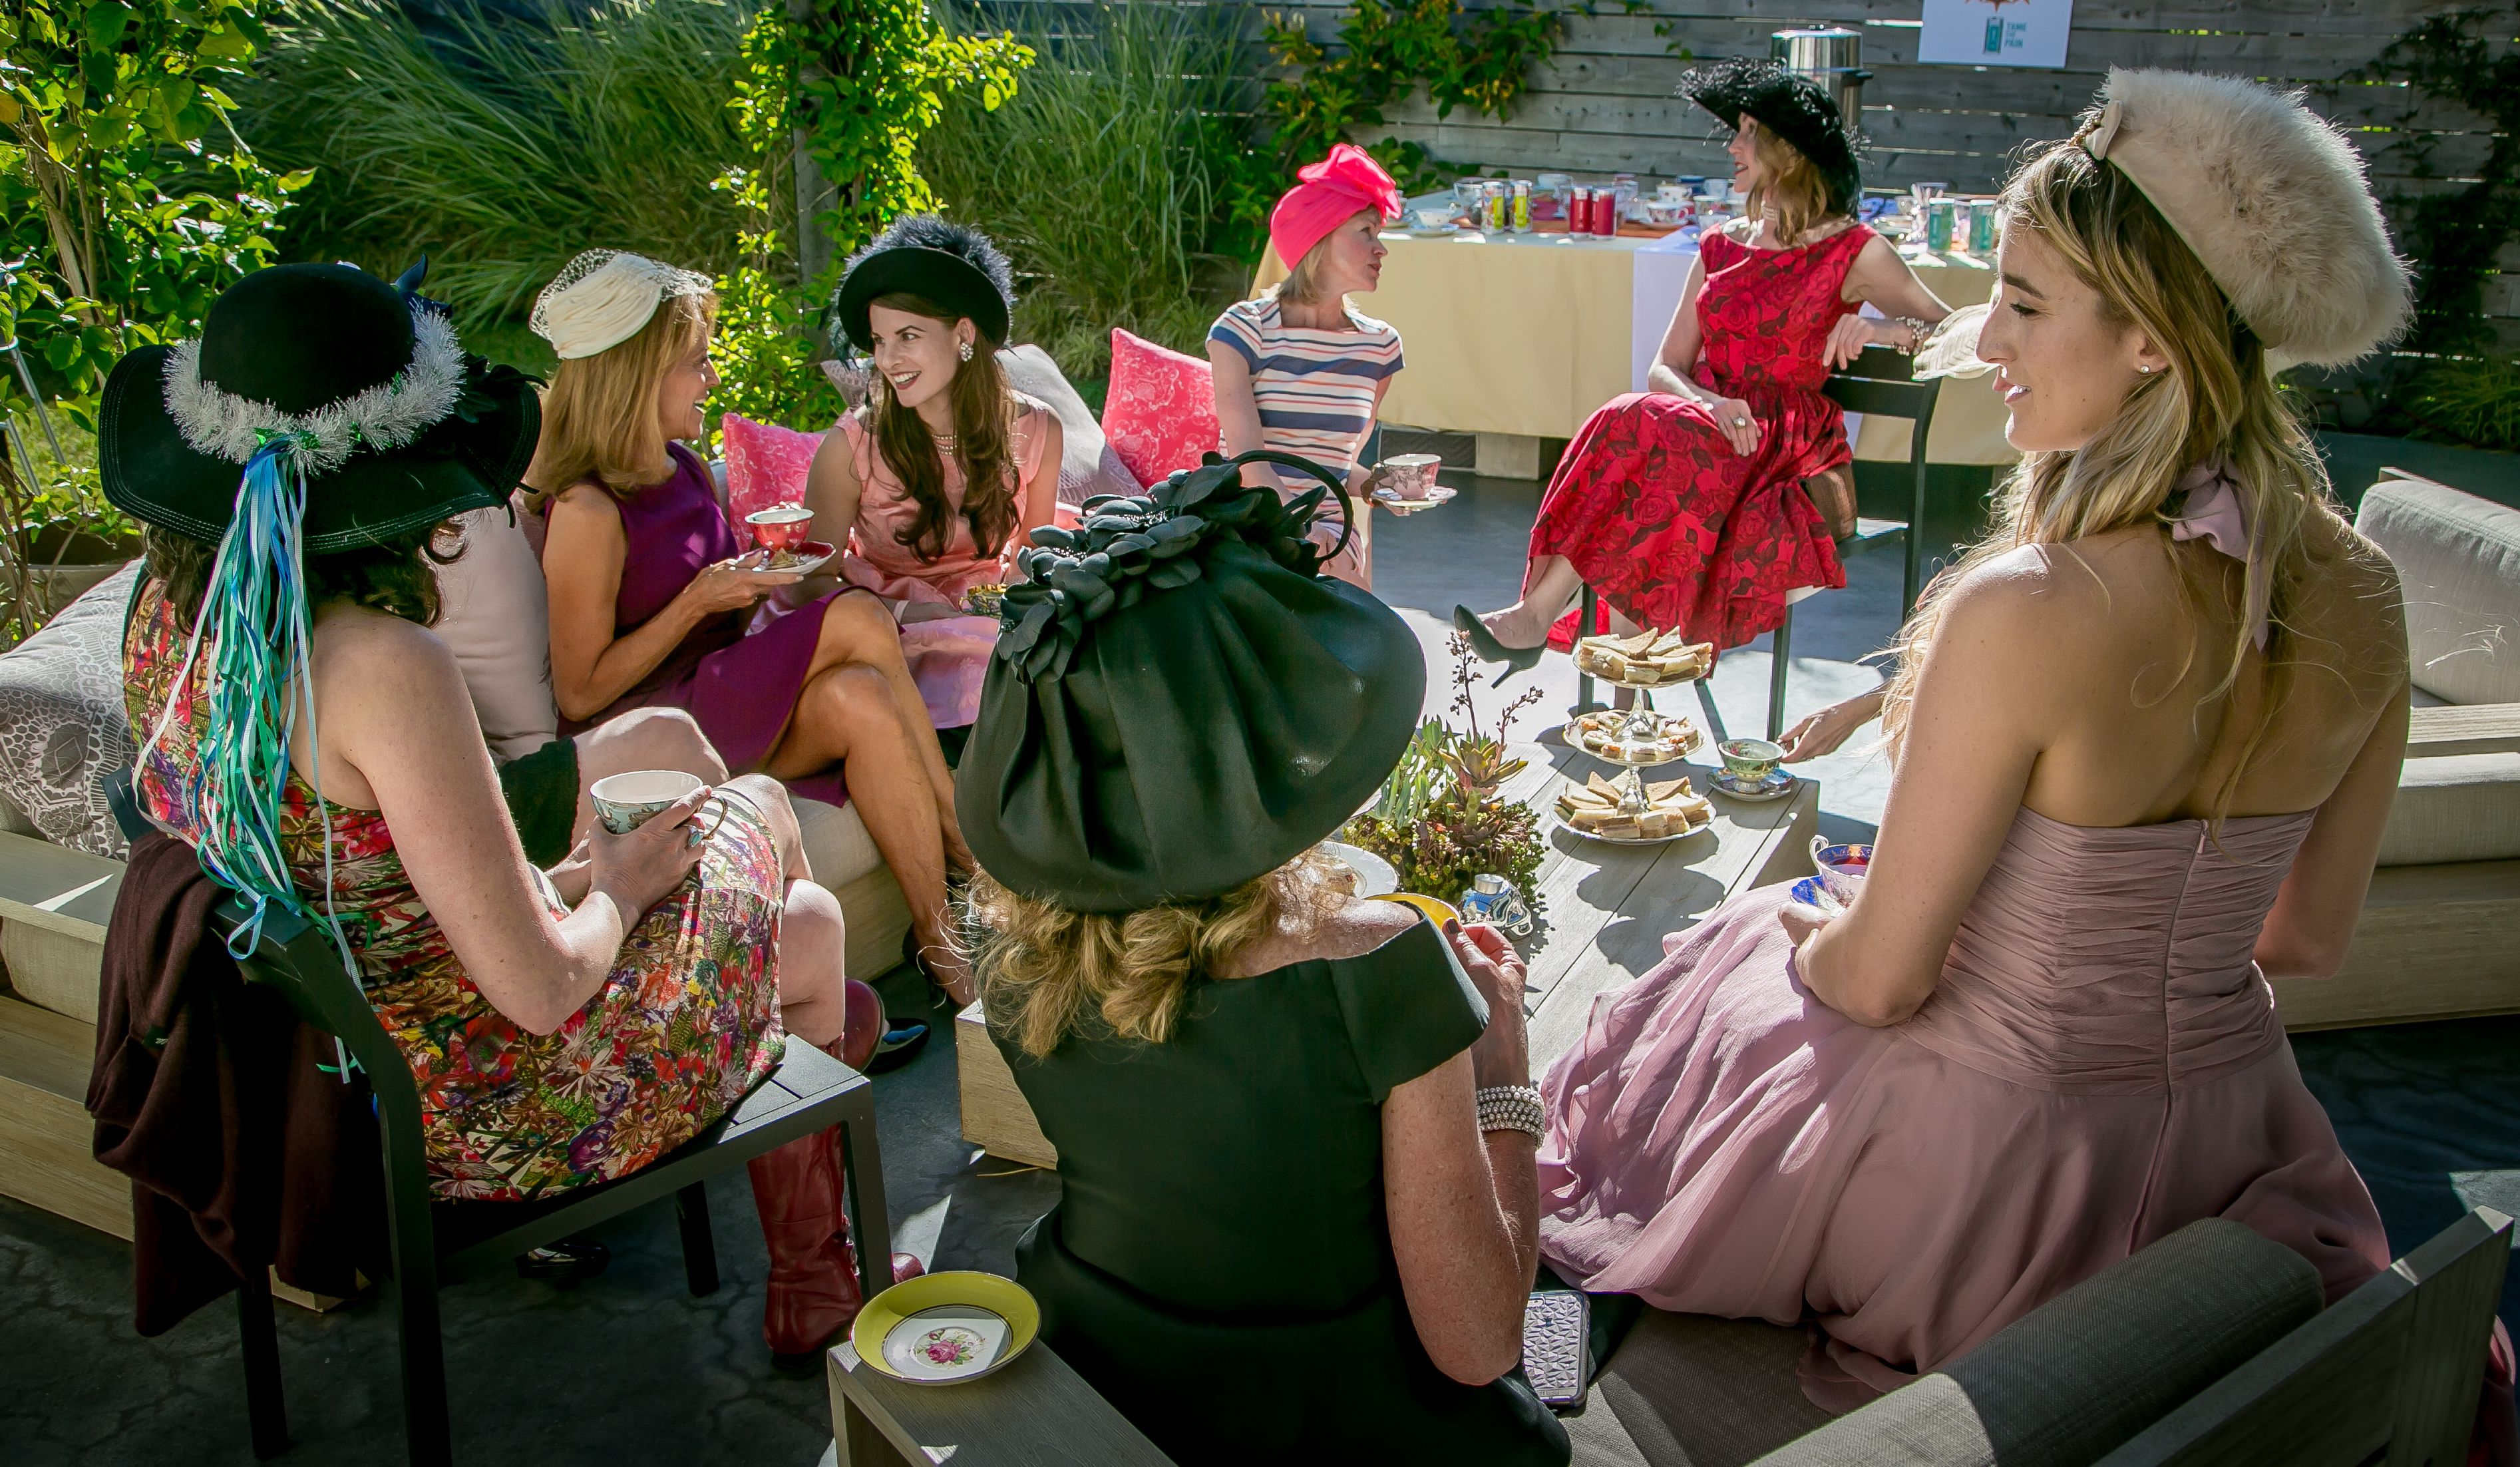 A tea party for Kikoko Cannabis Tea in Mill Valley, Calif., is seen on June 10th, 2017.